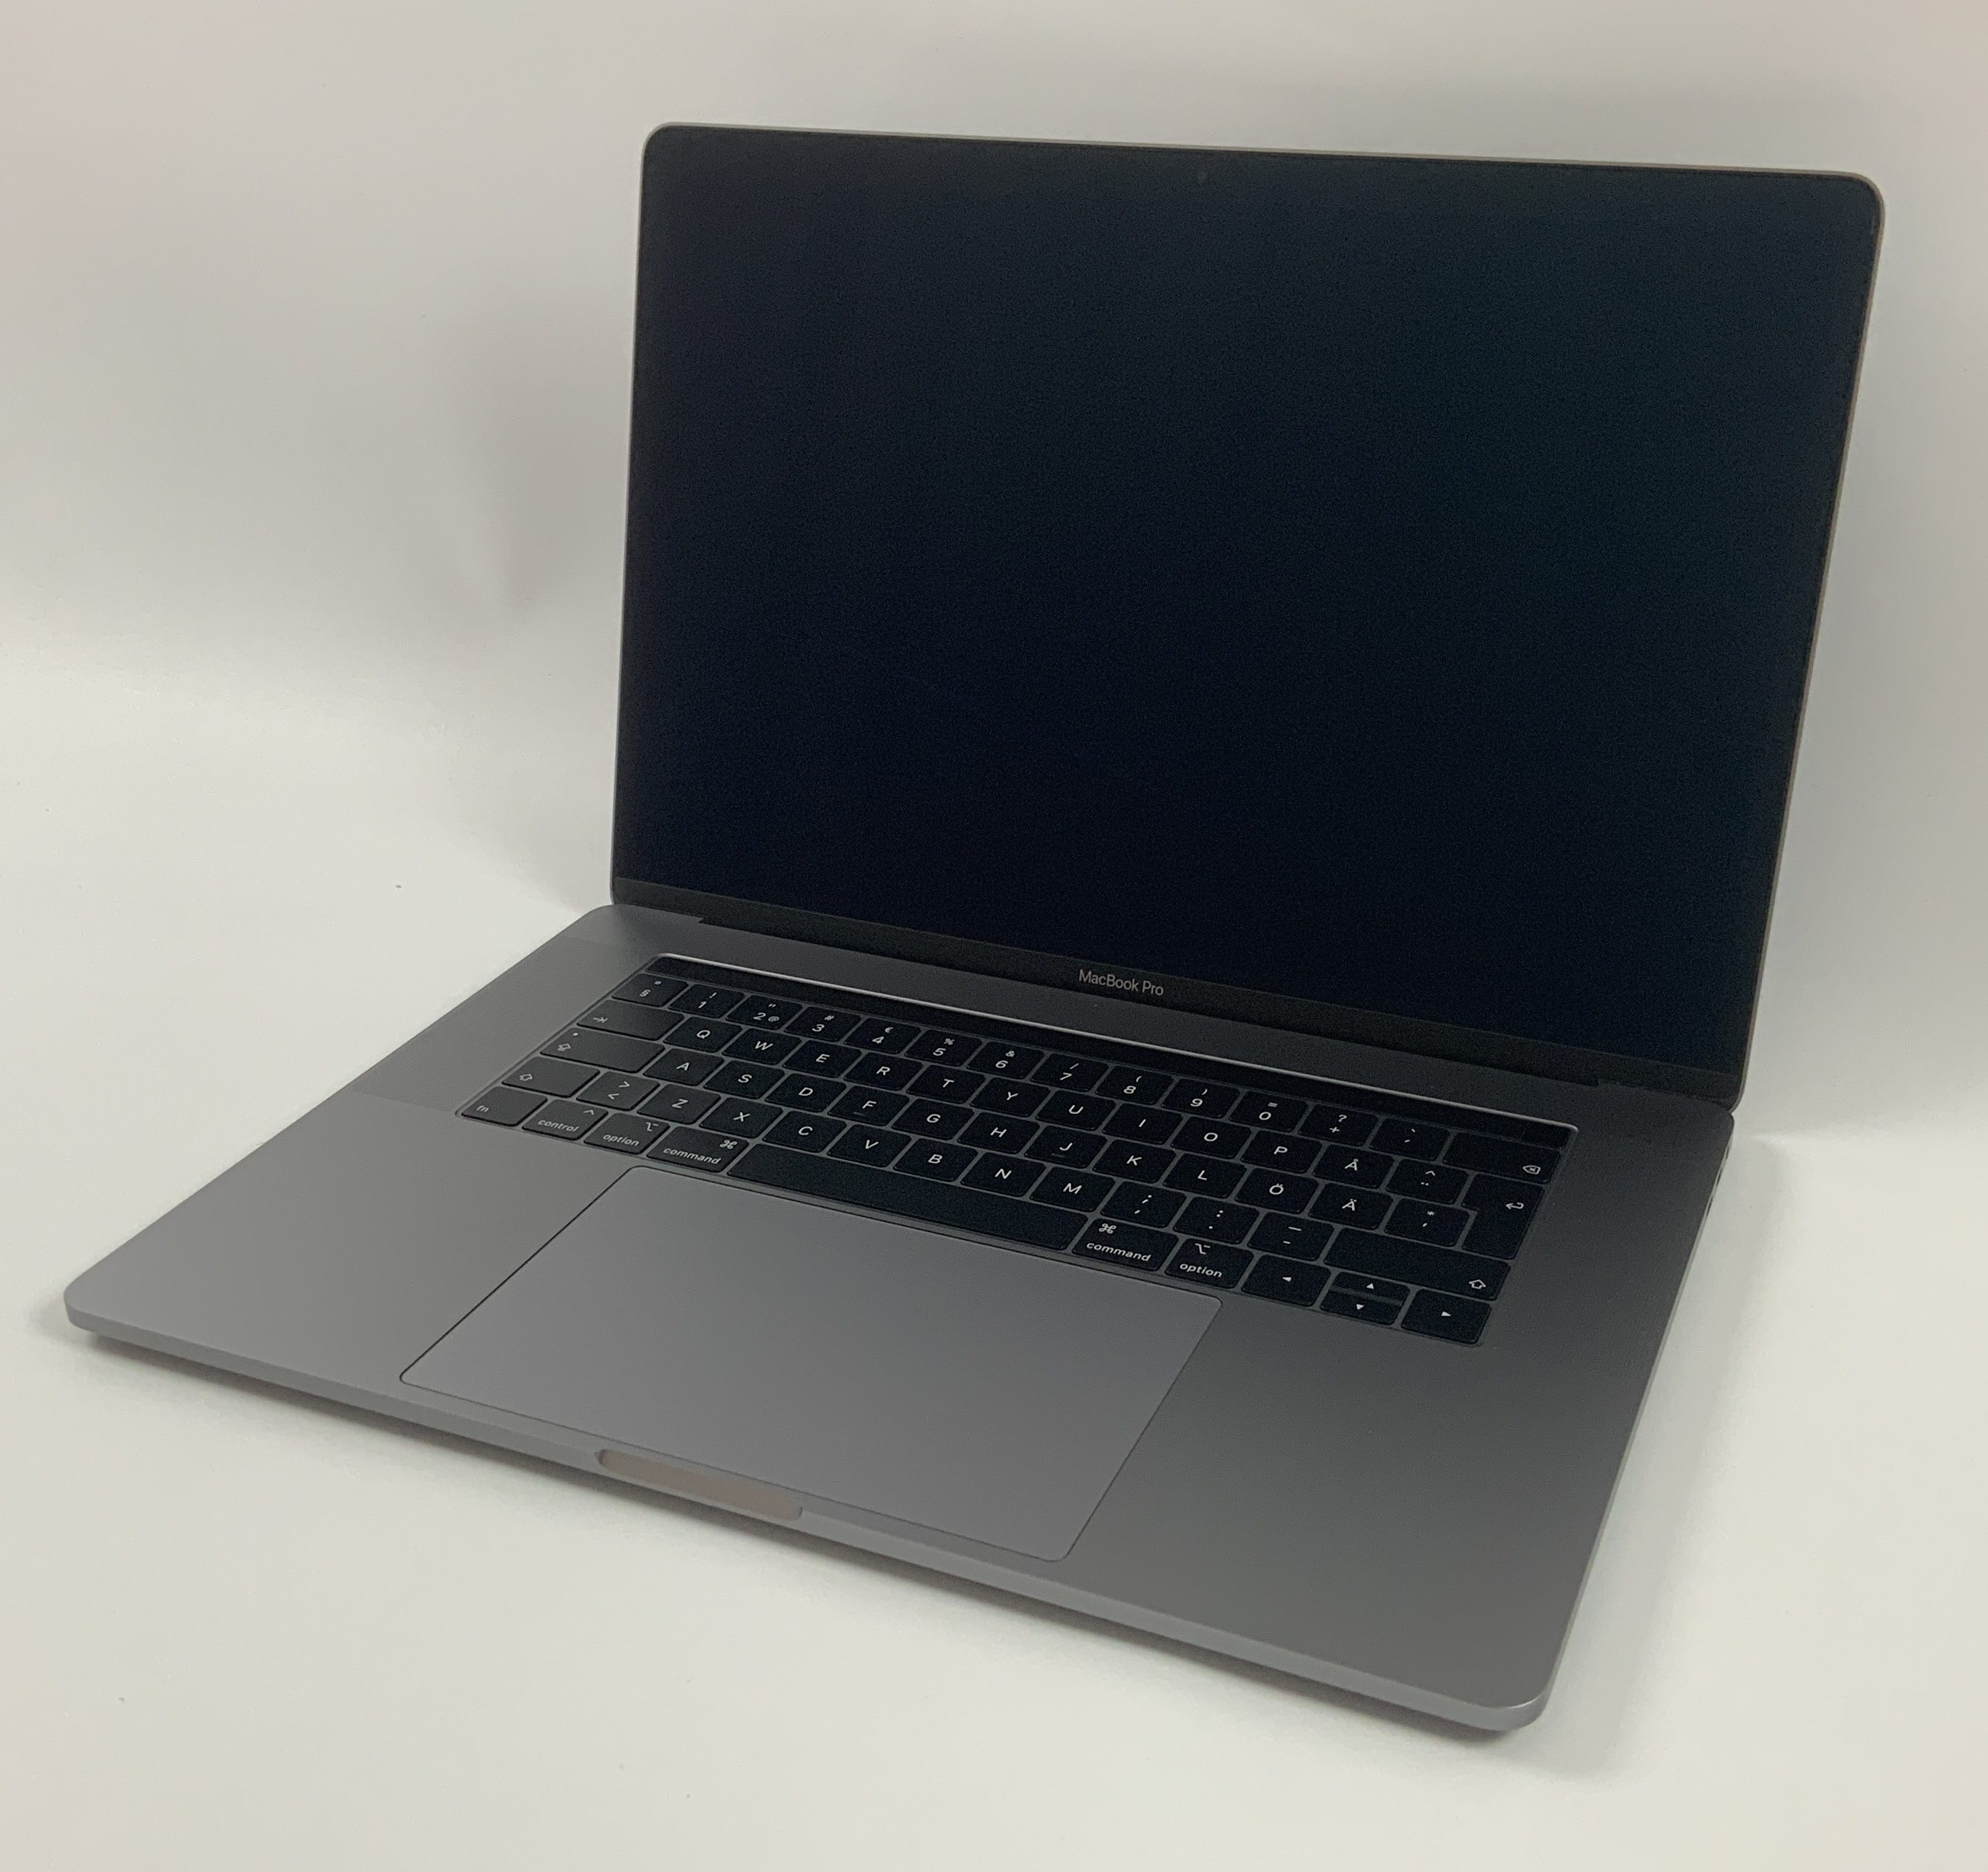 "MacBook Pro 15"" Touch Bar Mid 2018 (Intel 6-Core i7 2.2 GHz 16 GB RAM 512 GB SSD), Space Gray, Intel 6-Core i7 2.2 GHz, 16 GB RAM, 512 GB SSD, obraz 1"